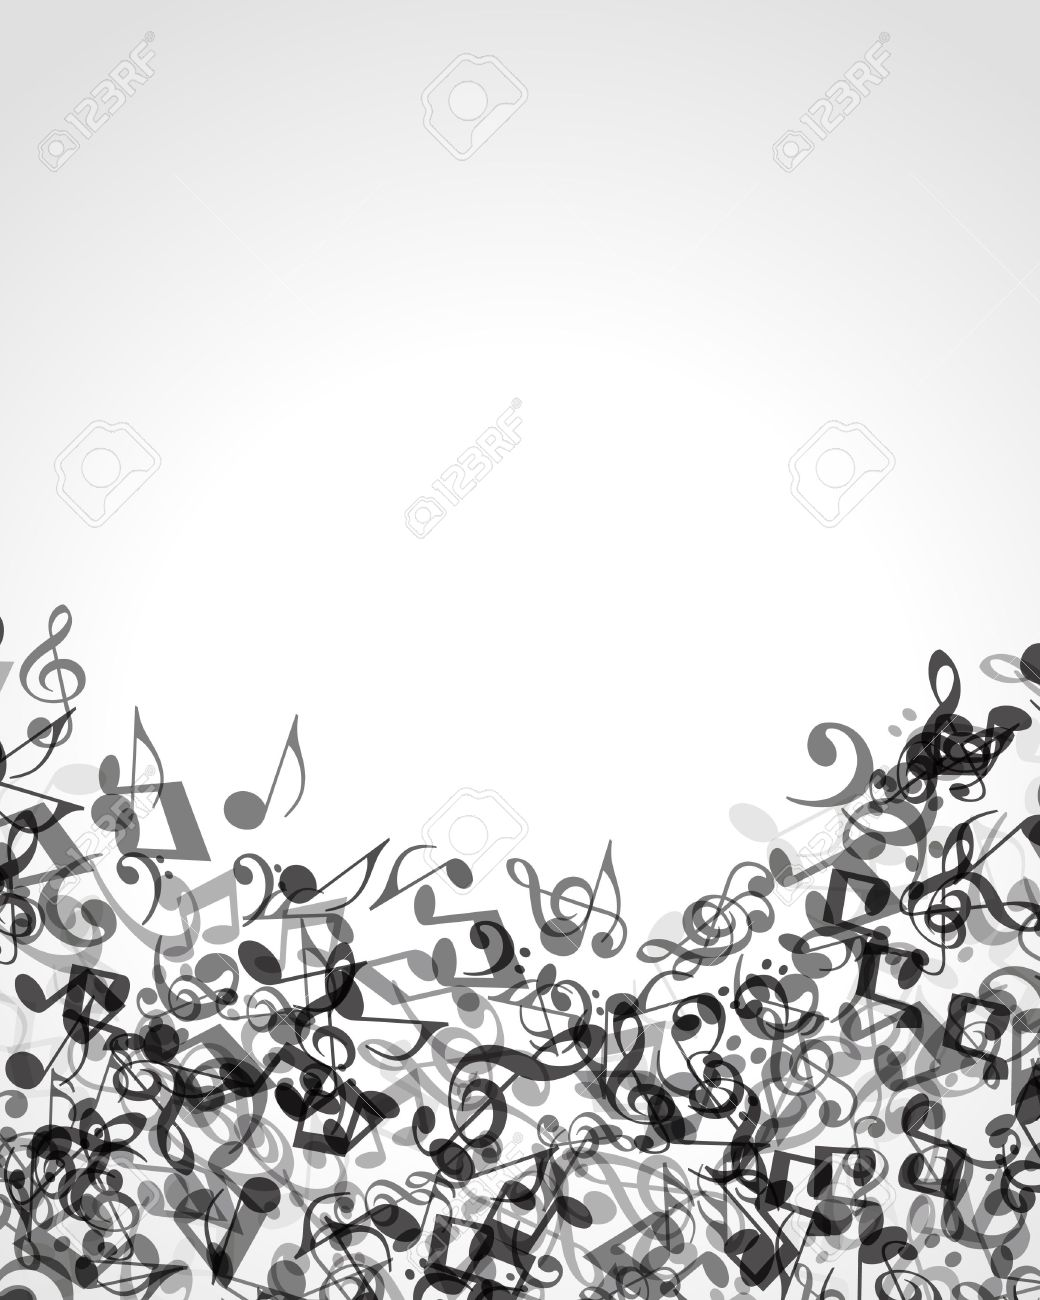 Black And White Music Notes Background Music notes vector background